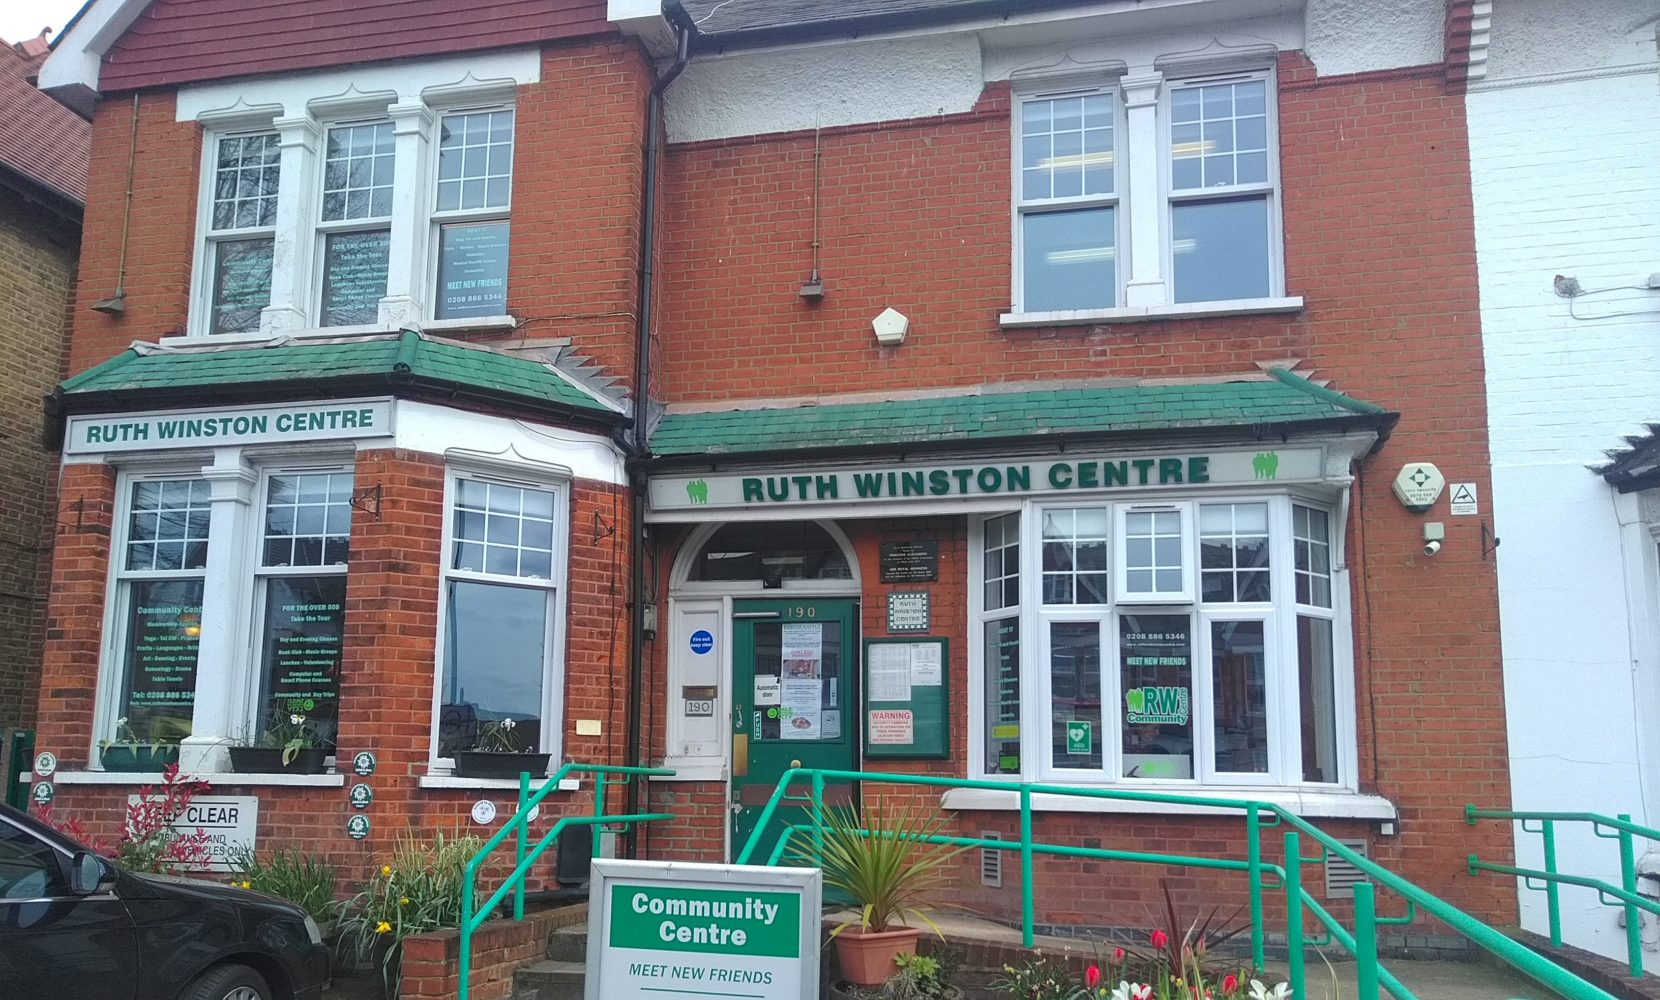 Ruth Winston Centre in Green Lanes was first opened in 1959